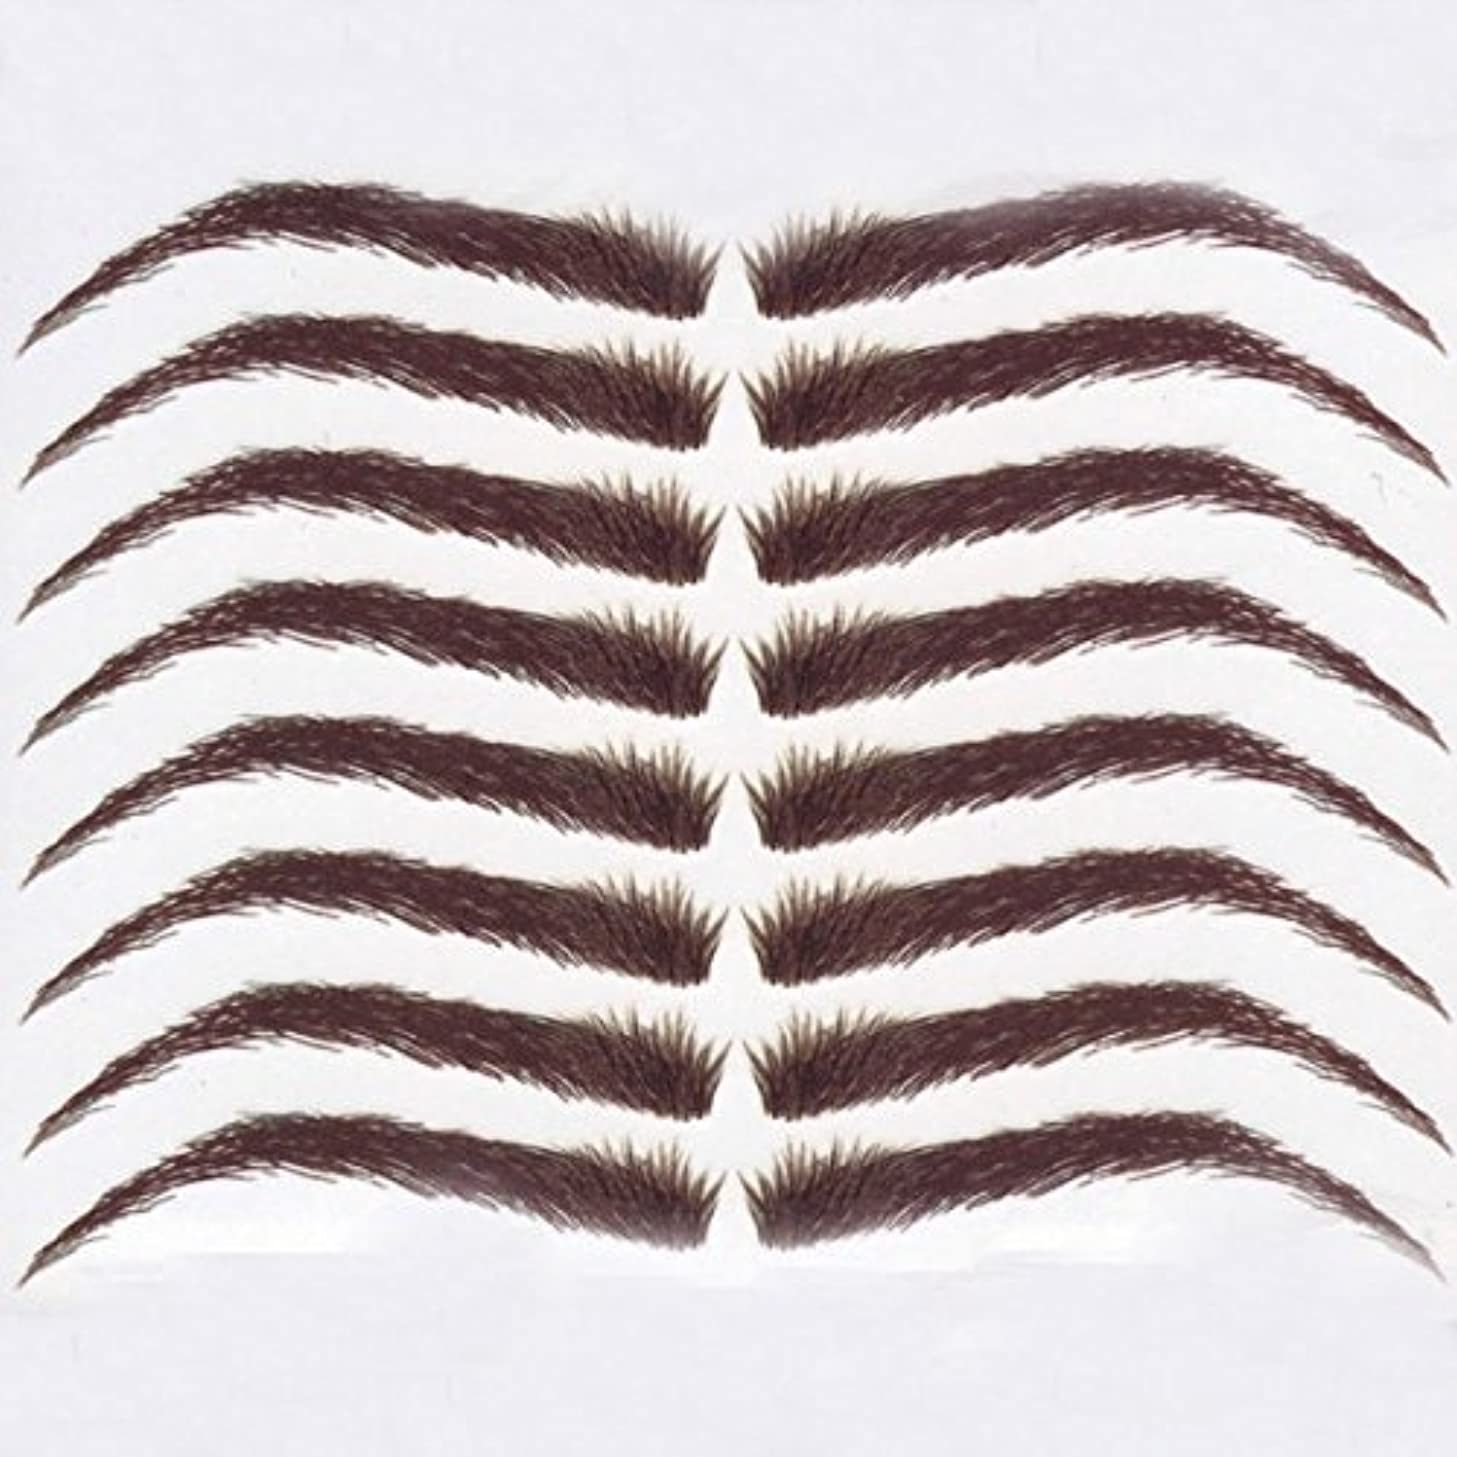 Cardani Eyebrow Tattoos #22: Full Brow & Soft Angled Arch Eyebrow Tattoos #22 (Dark Brown)